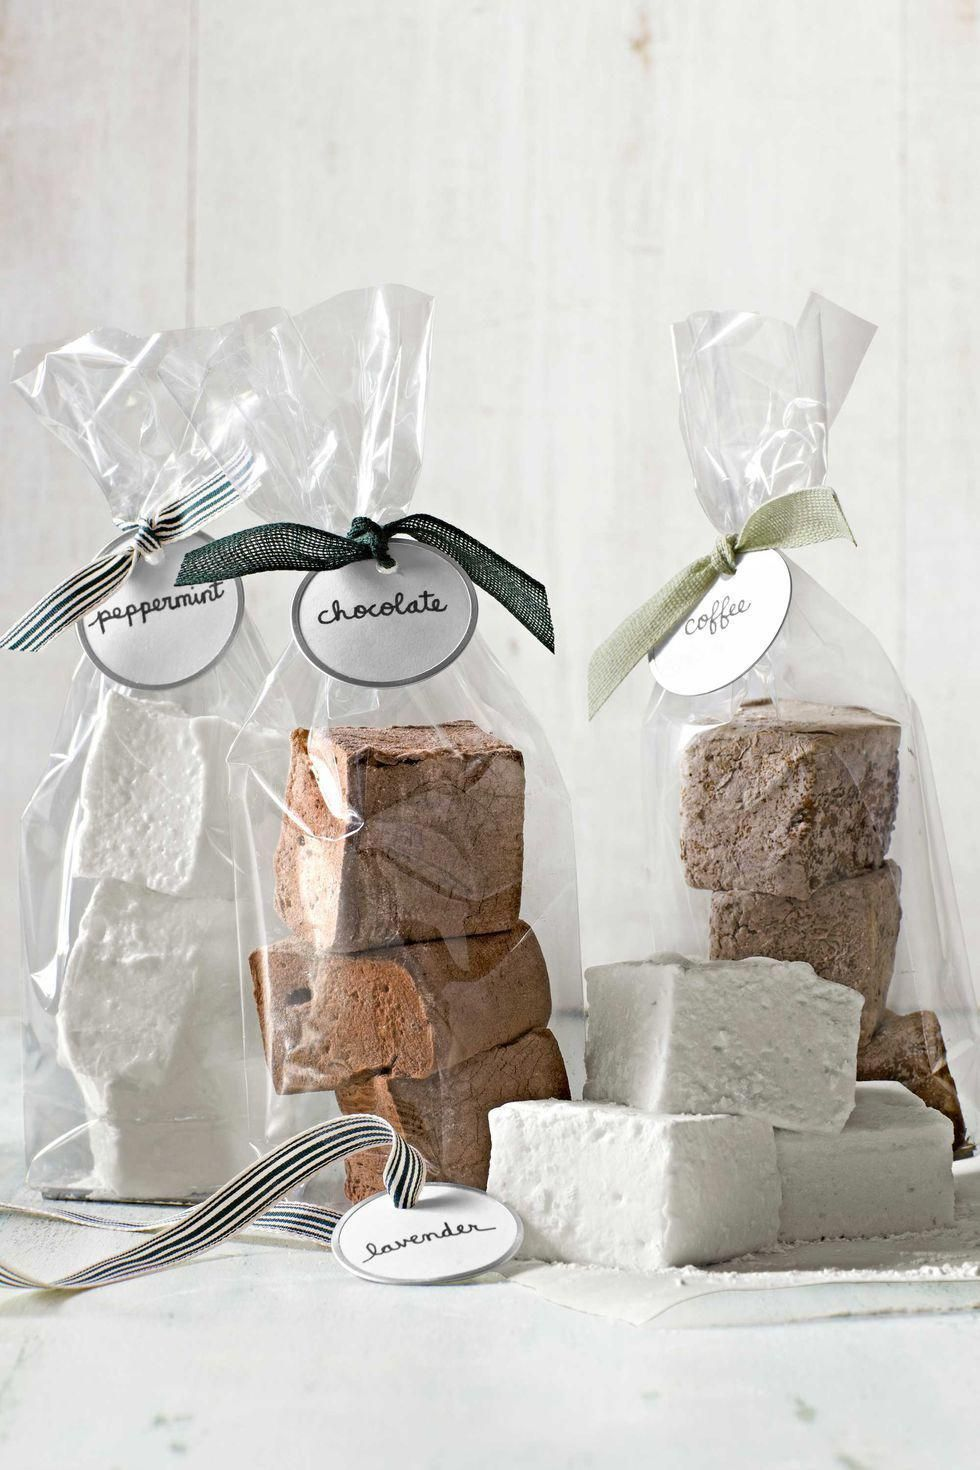 Gourmet marshmallow recipe - Great for gift giving!